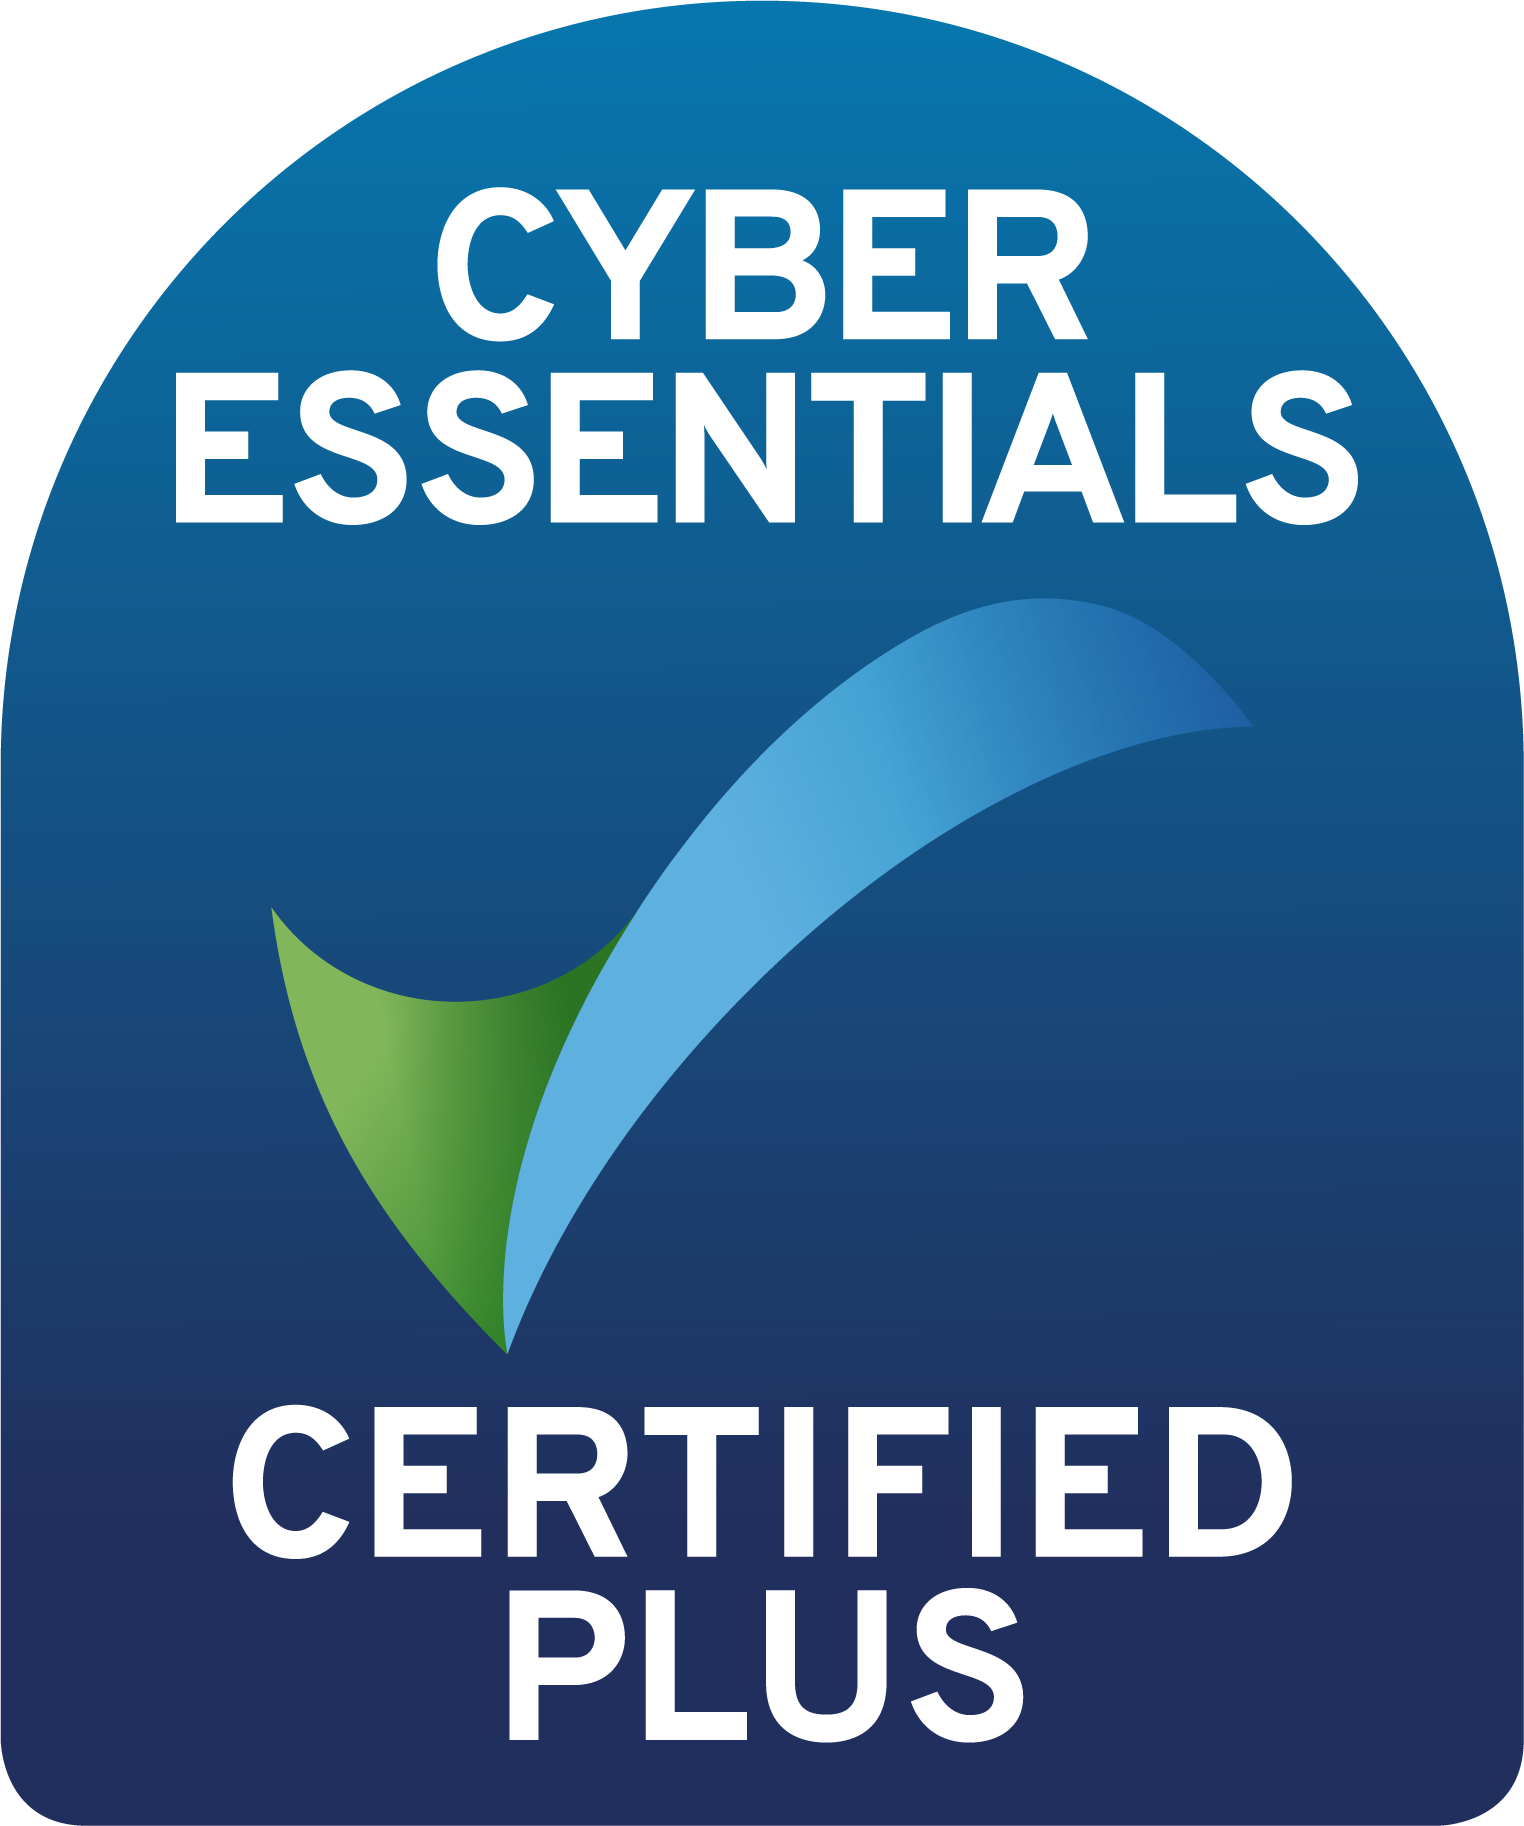 Ouris Cyber certificate